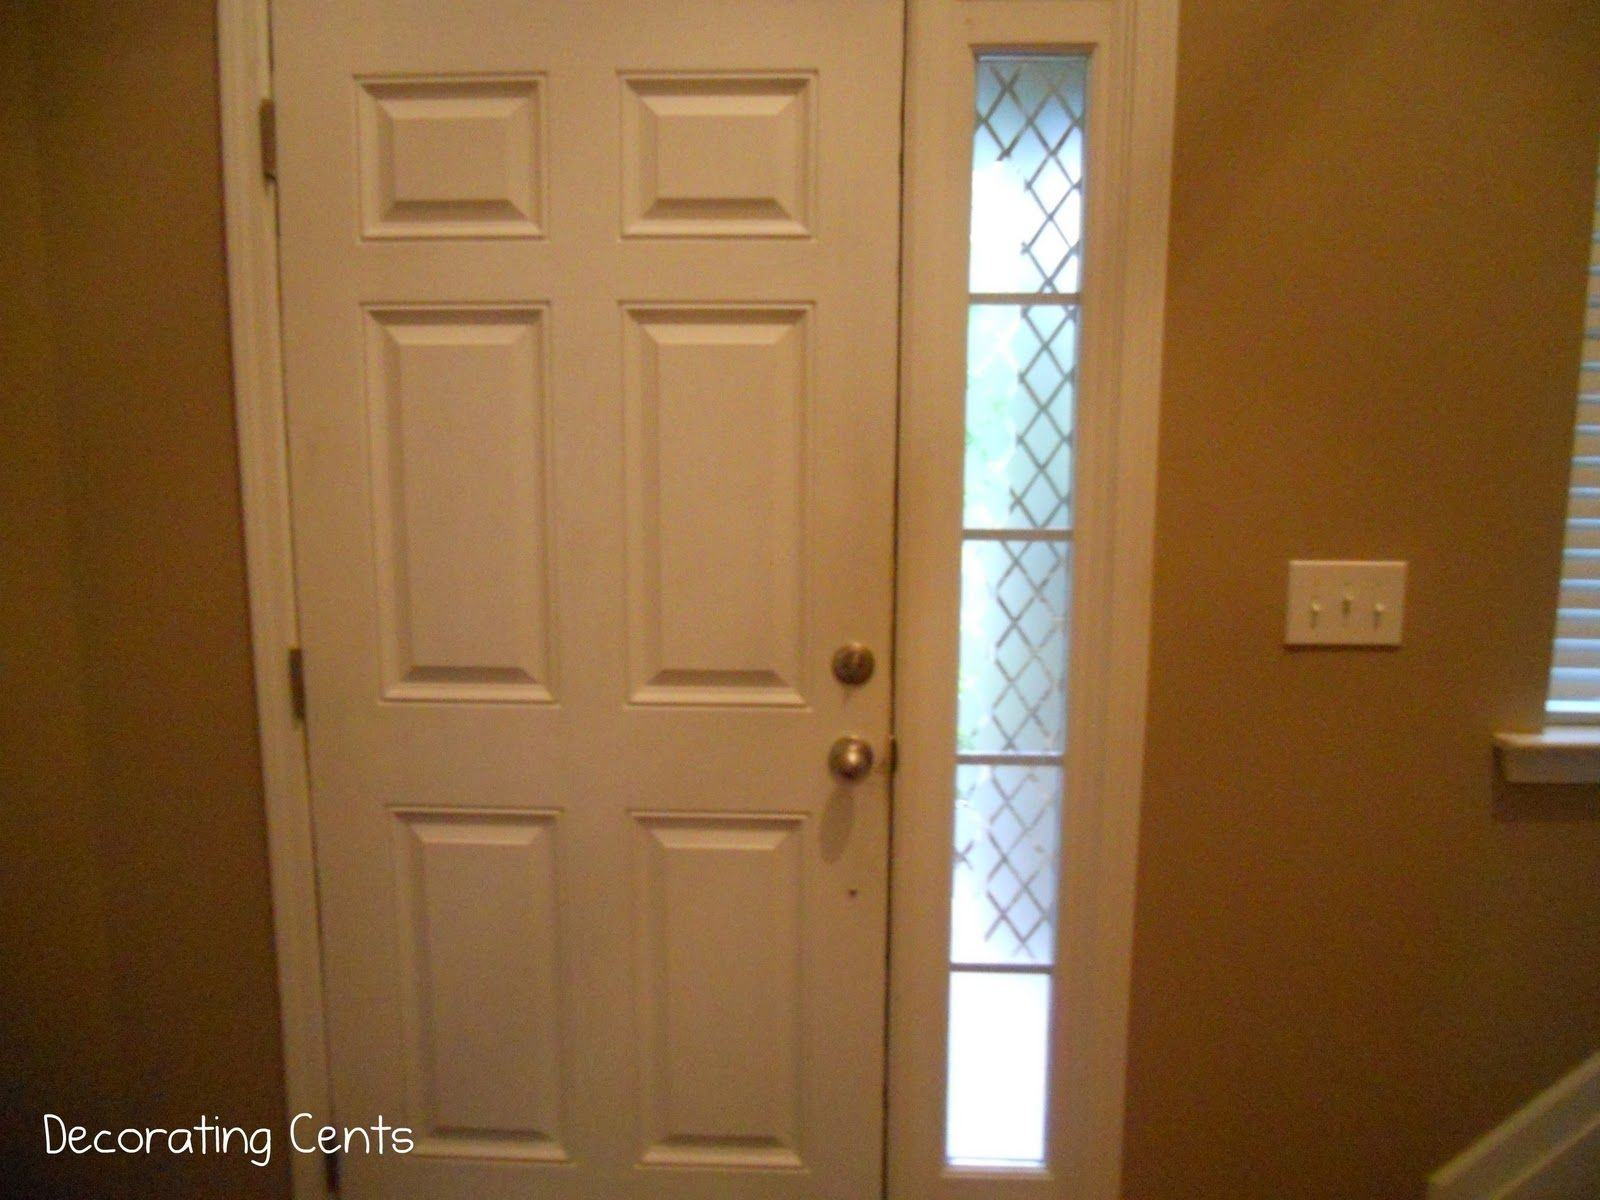 Decorating Cents Outside Looking In   Front doors with windows ...